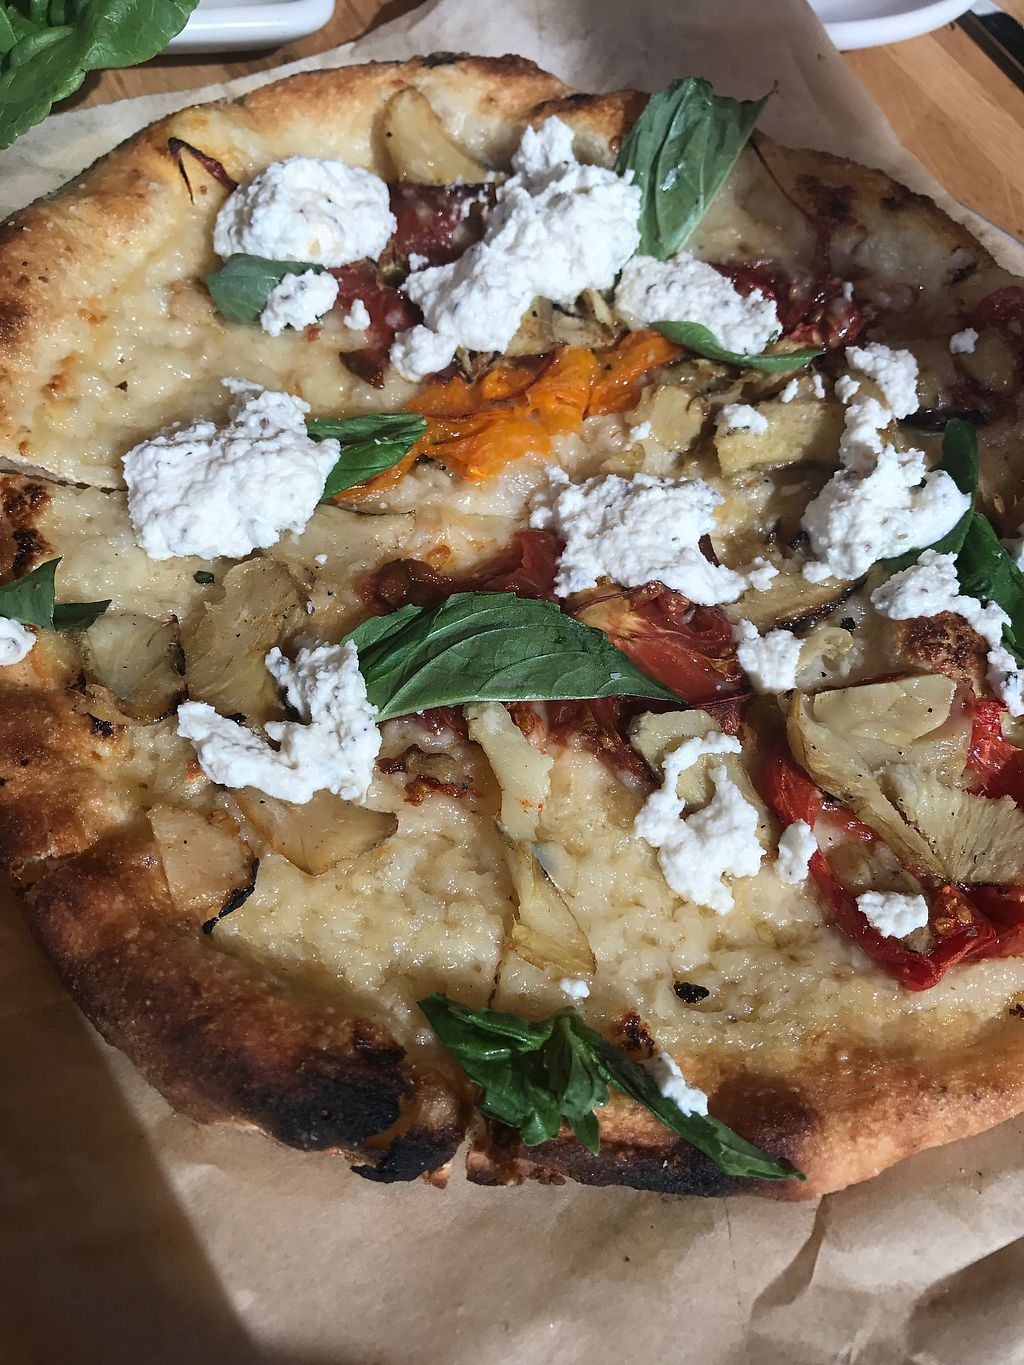 "Photo of True Food Kitchen  by <a href=""/members/profile/KerryElise"">KerryElise</a> <br/>Heirloom tomato pizza with housemade almond ricotta <br/> September 27, 2017  - <a href='/contact/abuse/image/56993/309054'>Report</a>"